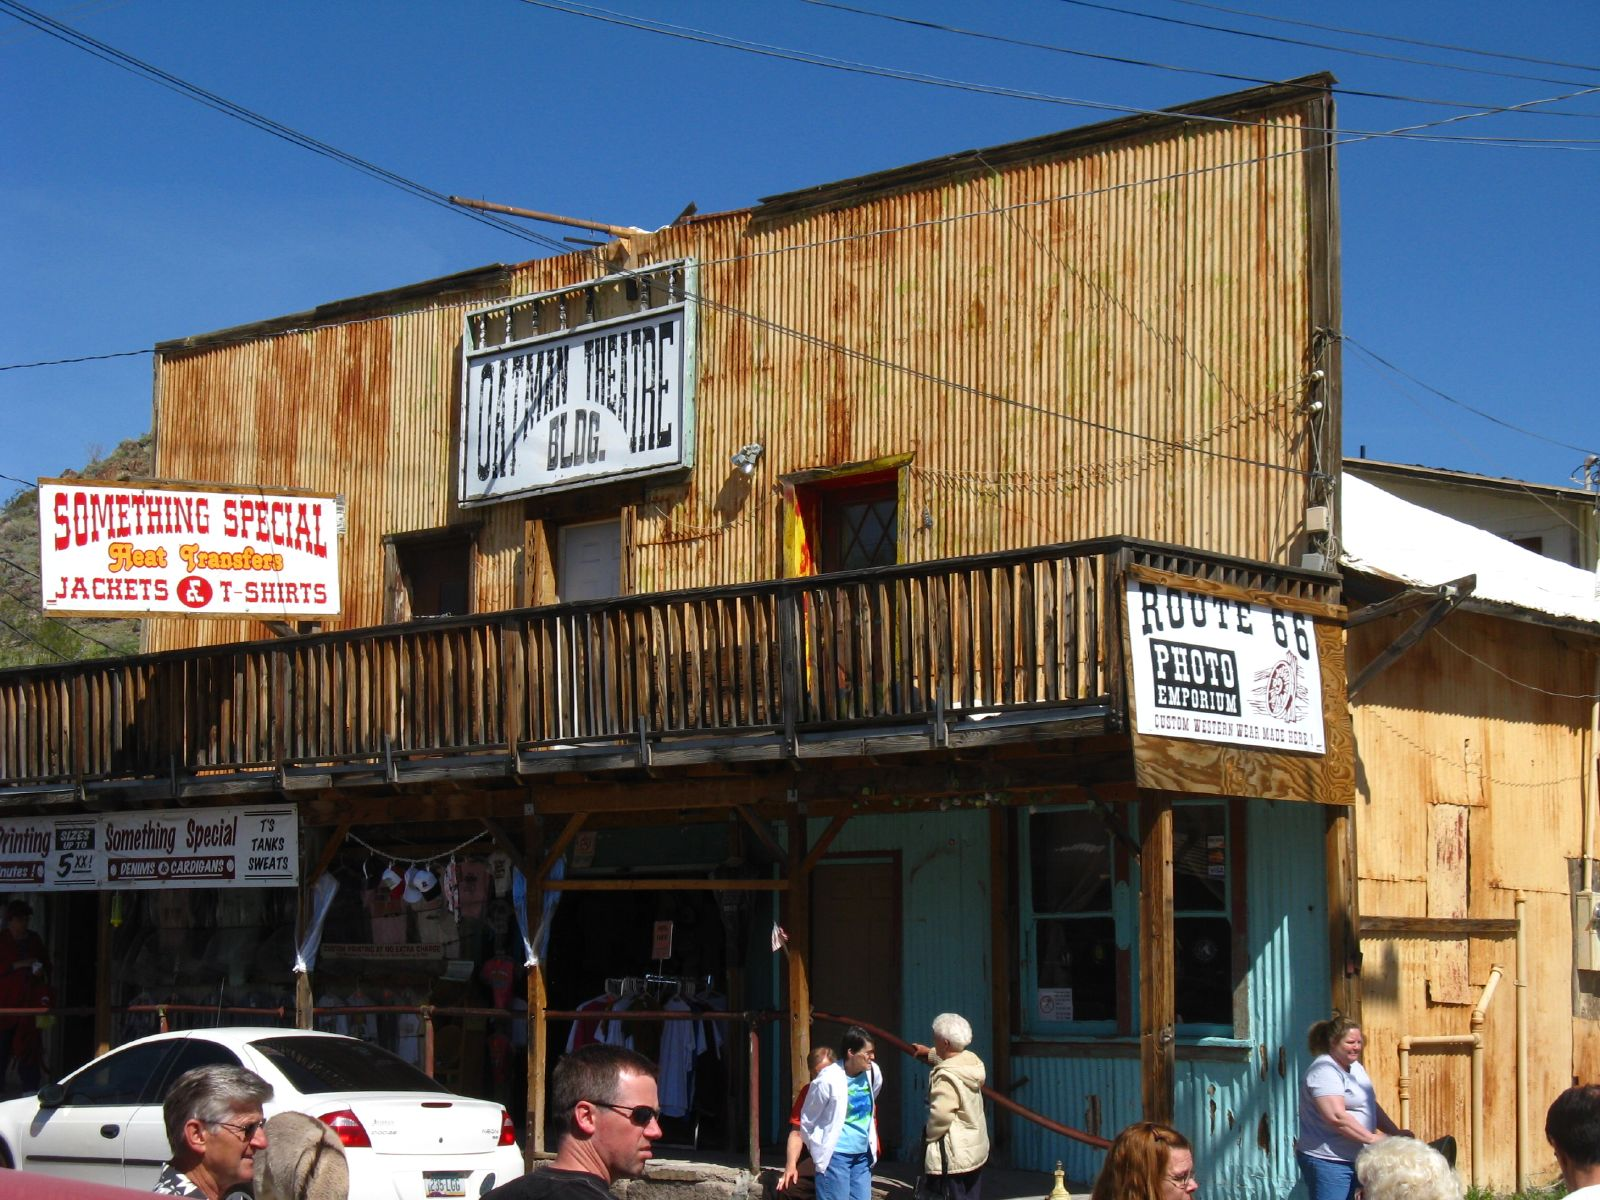 oatman dating What do flamingos eat that make their feathers turn pink red clay and insects flowers and weeds brine shrimp and blue-green algae minnows and mice.